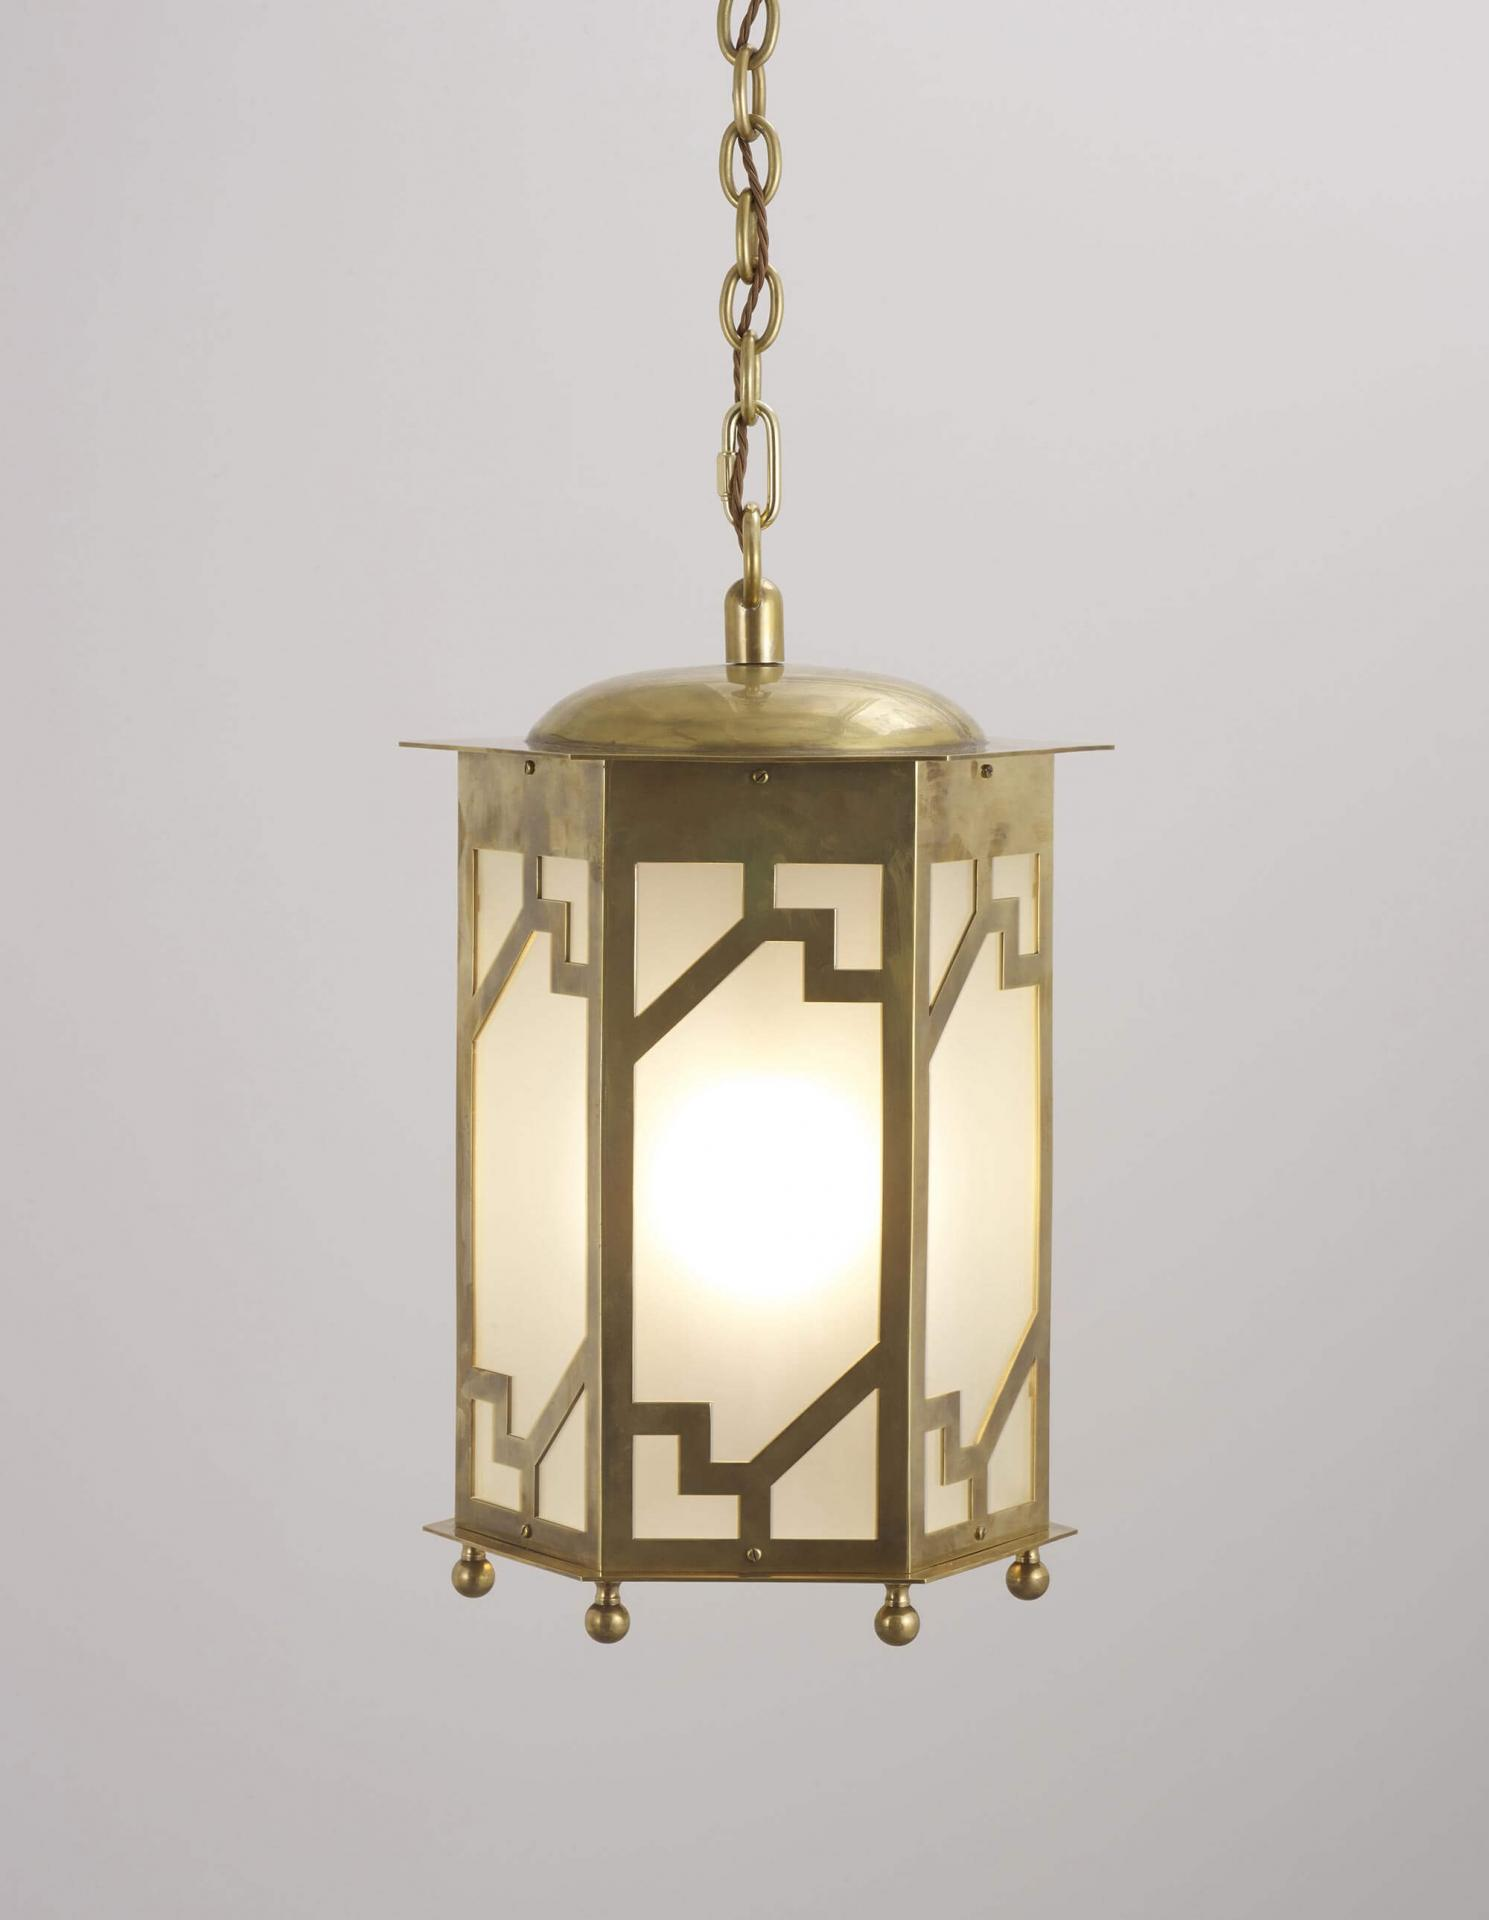 Steppe reproduction antique hanging lantern